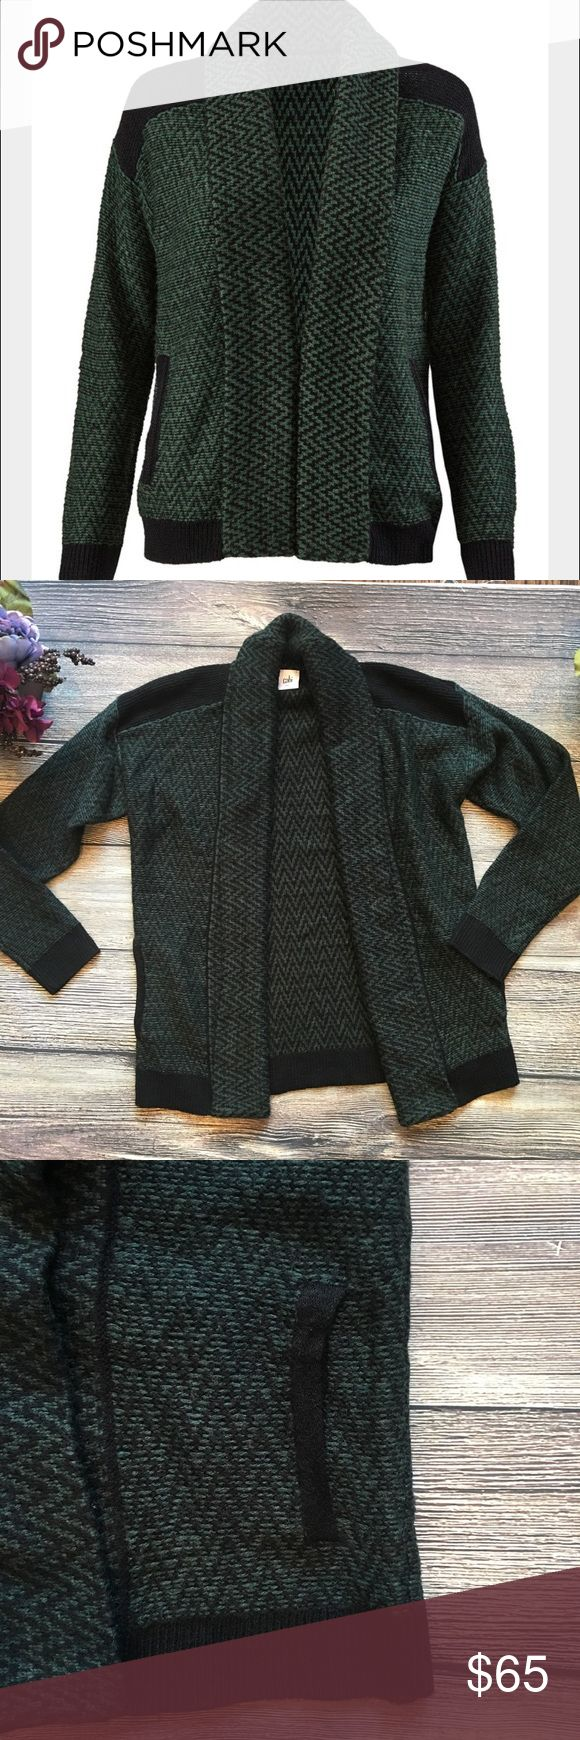 """CAbi Fireside Sweater cardi shawl collar Sz Small Discover CAbi's Fireside Sweater, a classically shaped, richly colored knit that is perfect for fall layering. Cozy up with her wide shawl collar and ribbing for a toasty fit when chilly weather strikes. Hunter green and black. She's sure to be your winter favorite grab along for everything from weekend ski trips to an afternoon at the movies to lounging around on a lazy Sunday, open drape front, approx 18"""" bust/pit to pit, 29"""" length when…"""